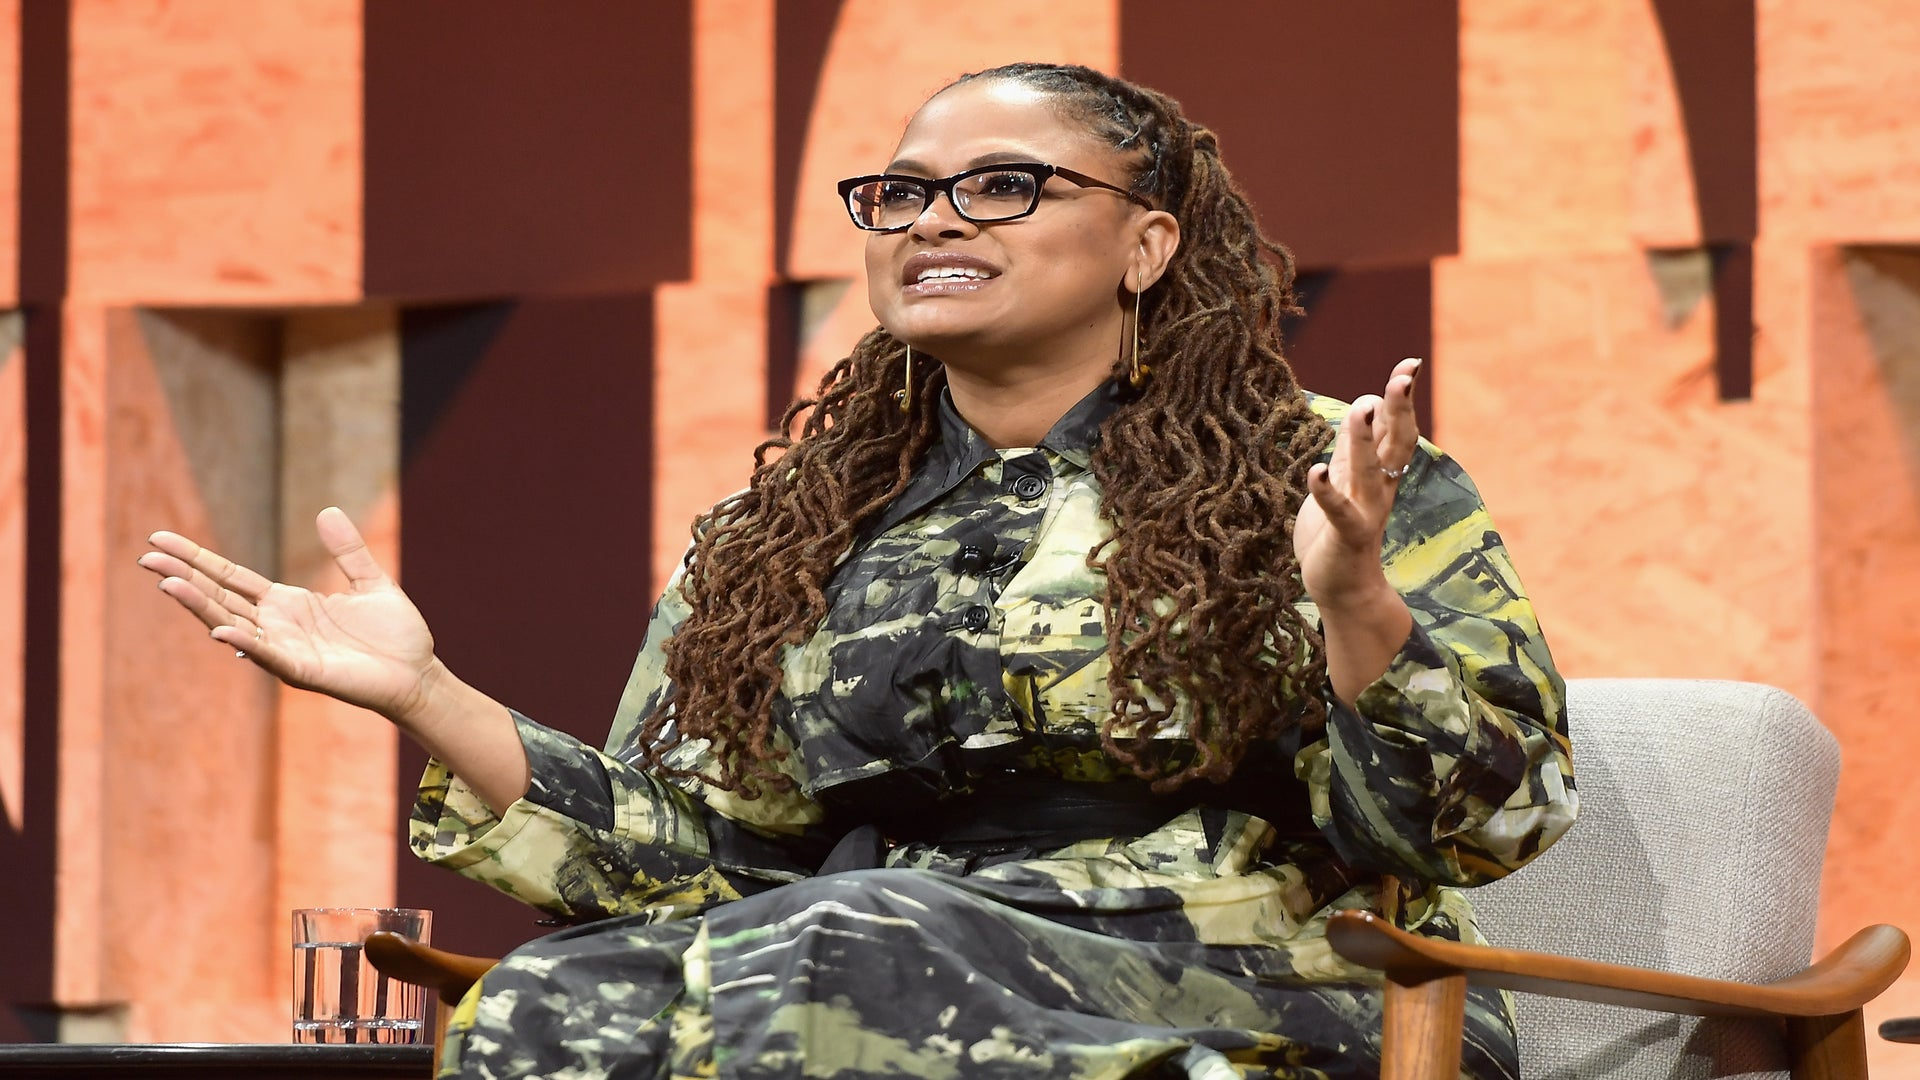 Ava Duvernay Calls Out Trump For 'Due Process' Hypocrisy